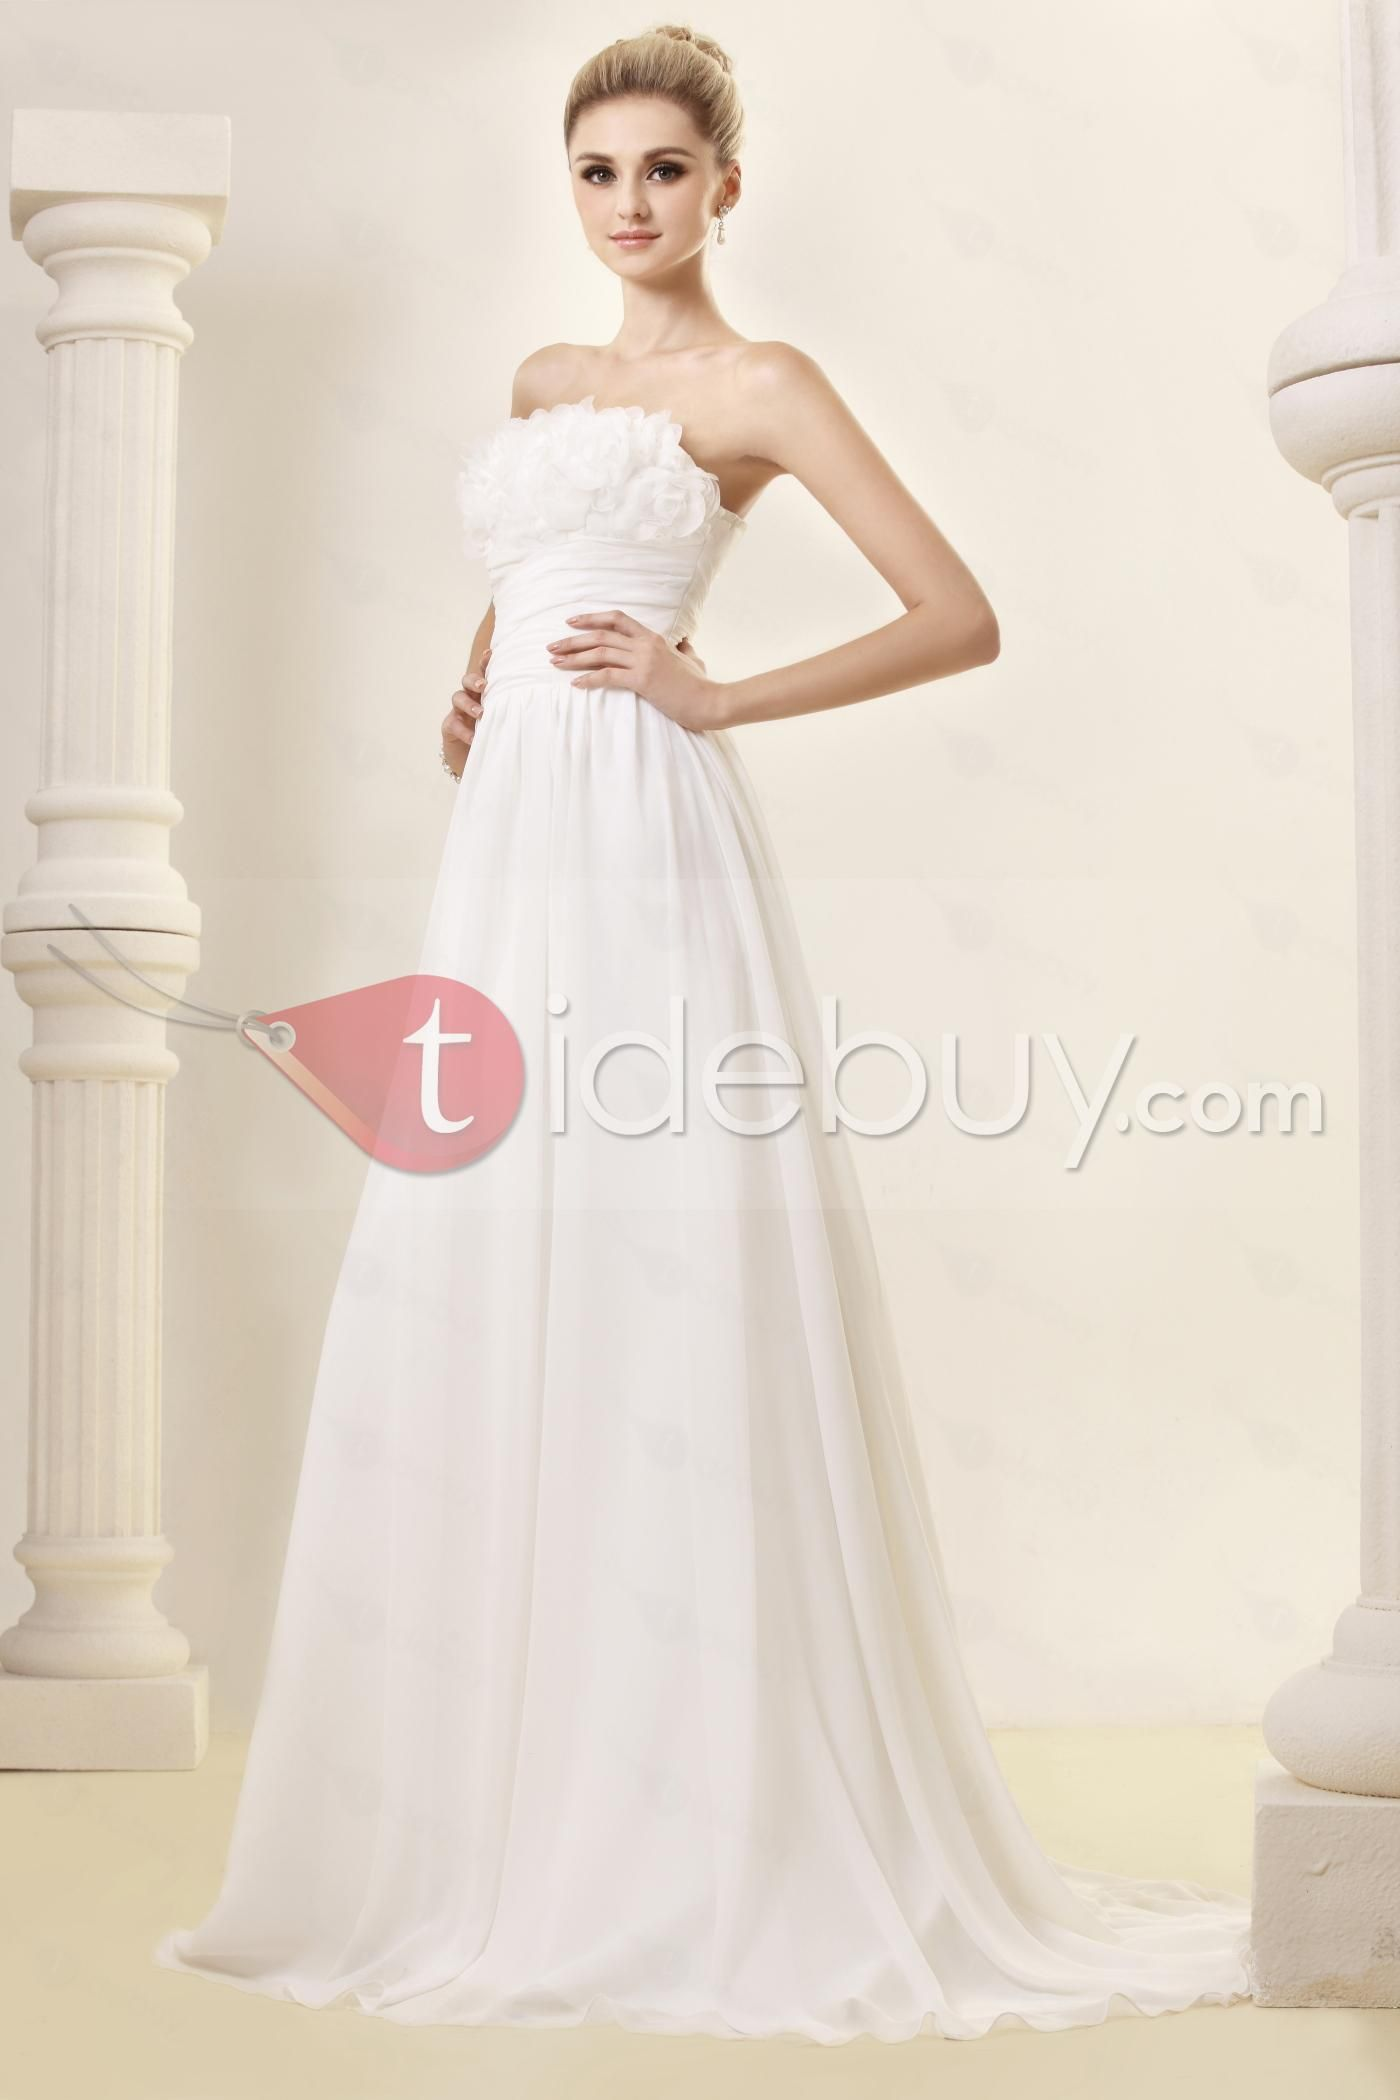 Delightful empire flowers strapless chapel dashaus wedding dress